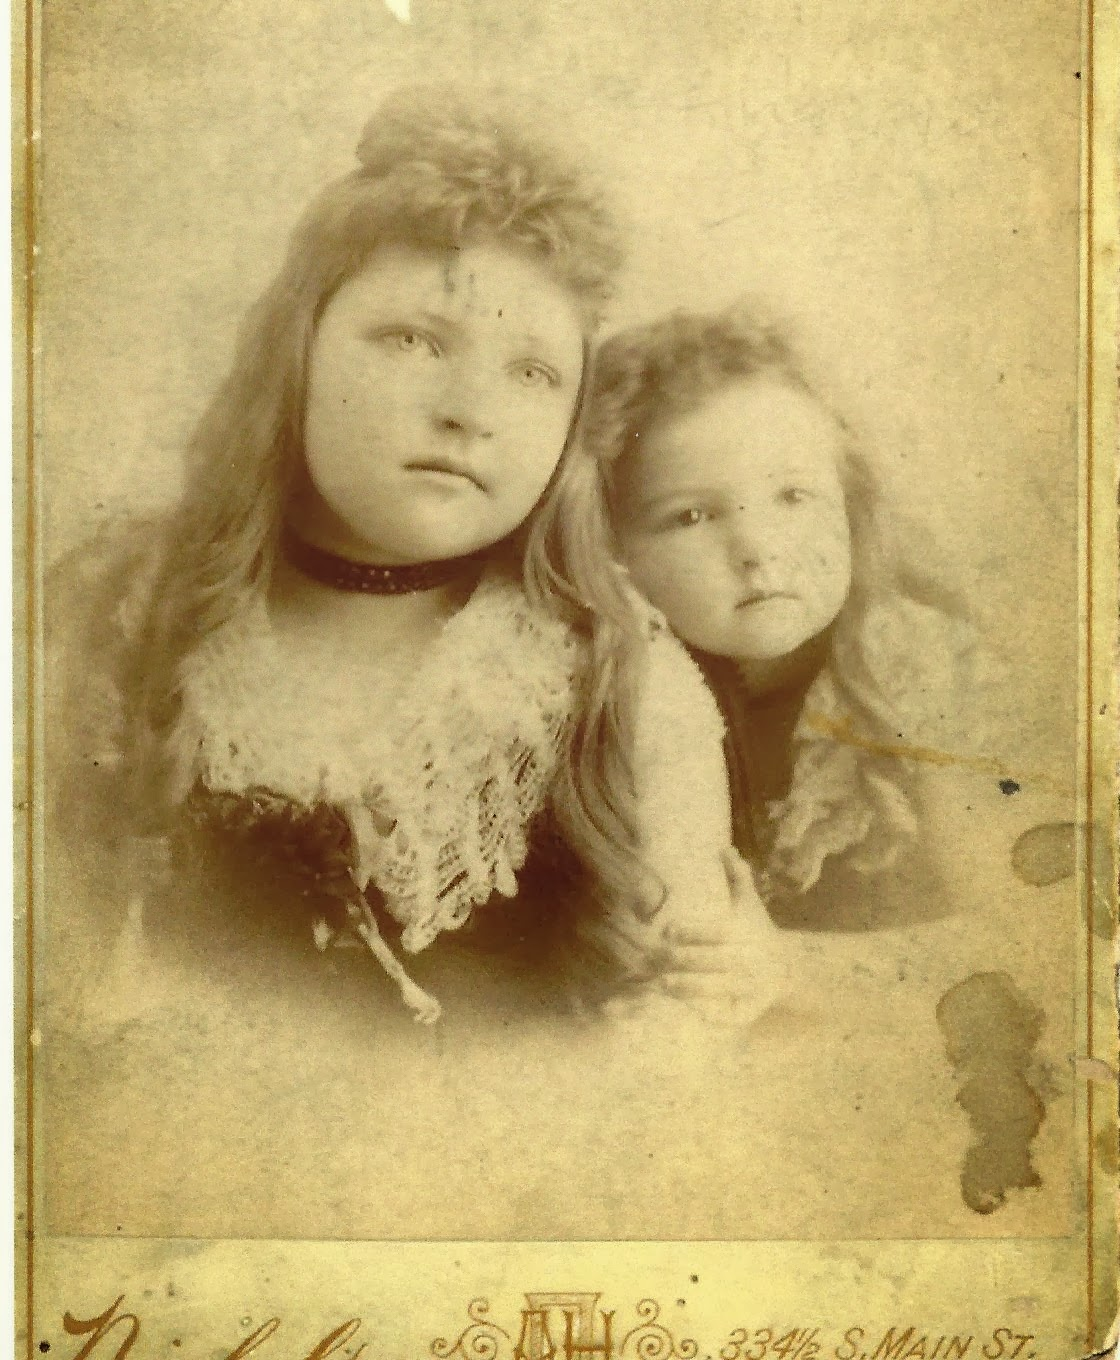 Climbing My Family Tree: Grace & Fern Fisher, daughters of Ella Bailey & William W. Fisher